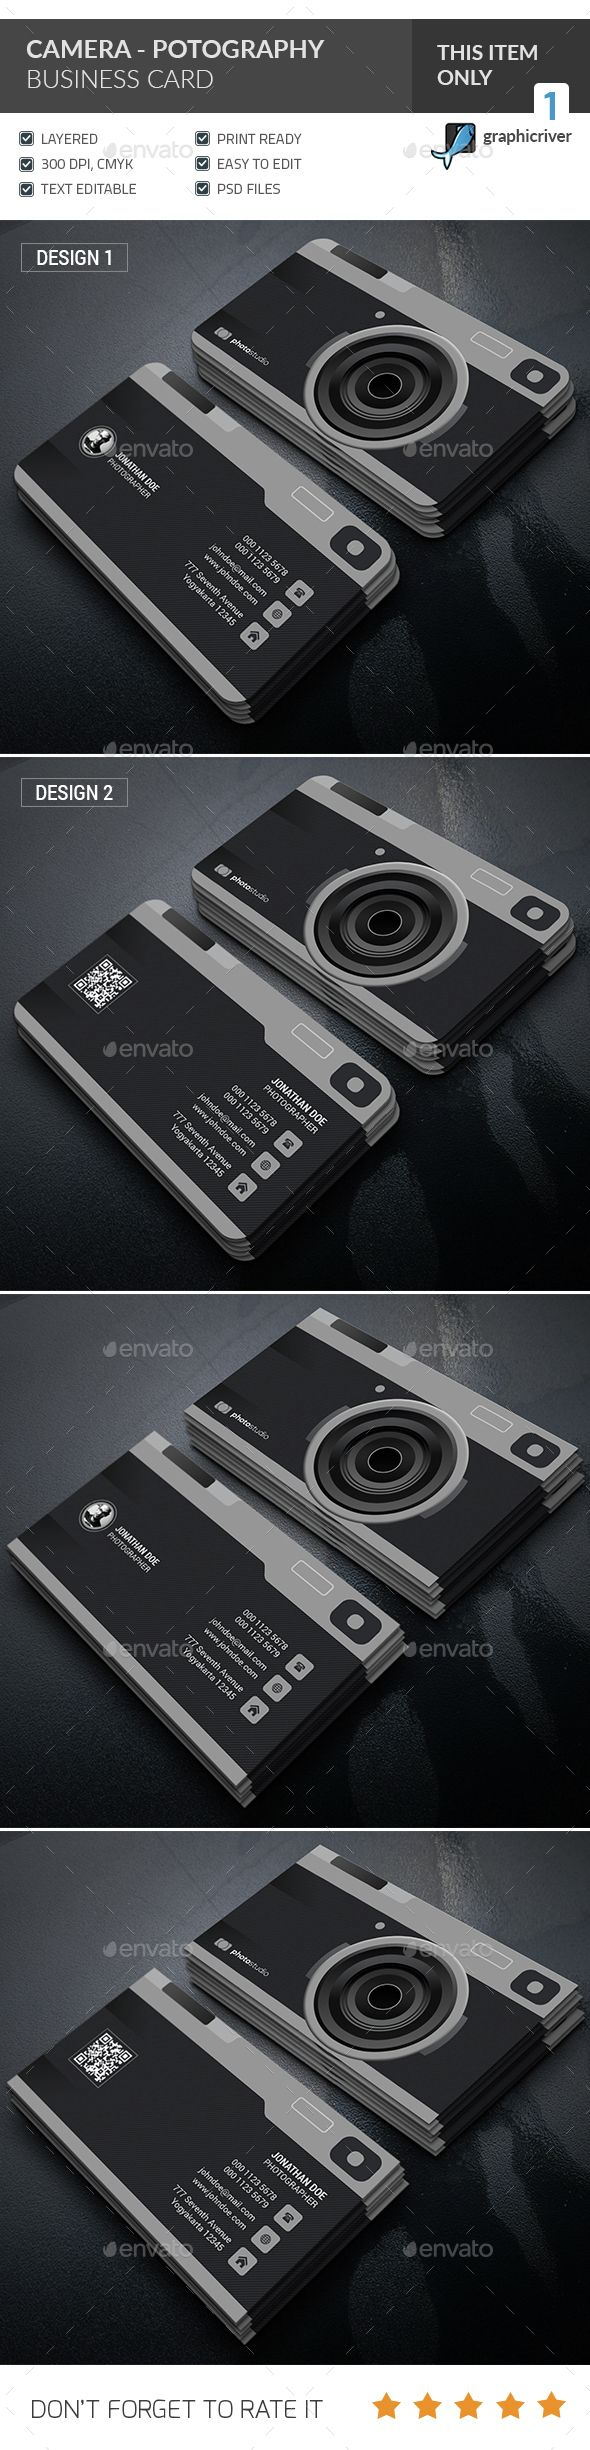 Camera - Photography Business Card  - Industry Specific Business Cards